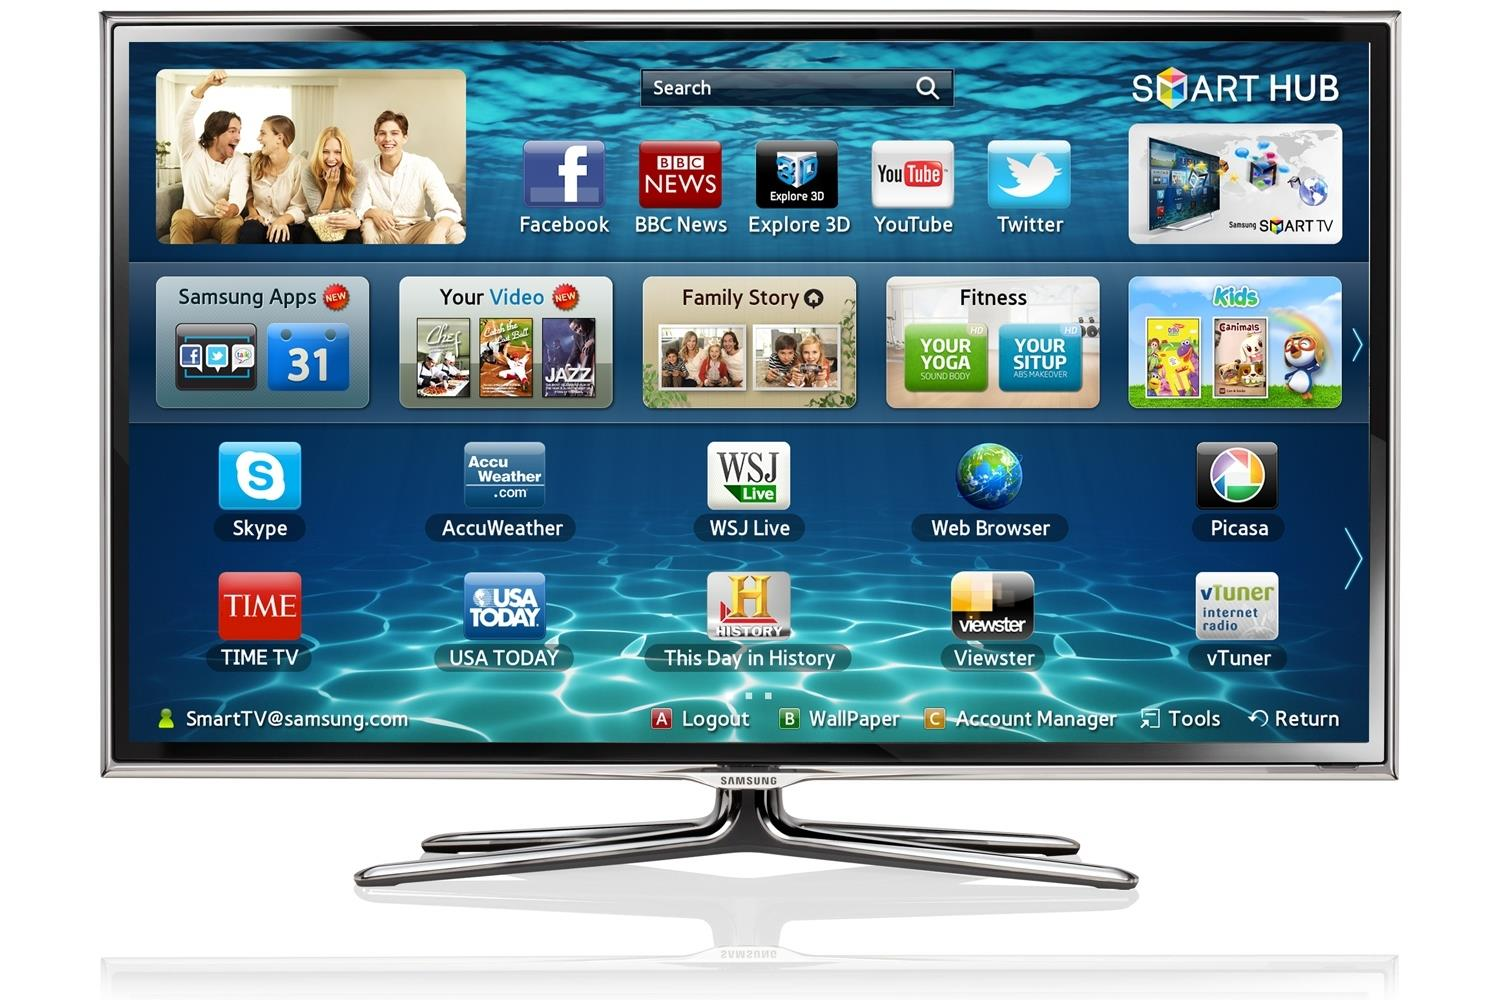 Samsung UE55ES6800U 55 Inch 3D Smart LED TV